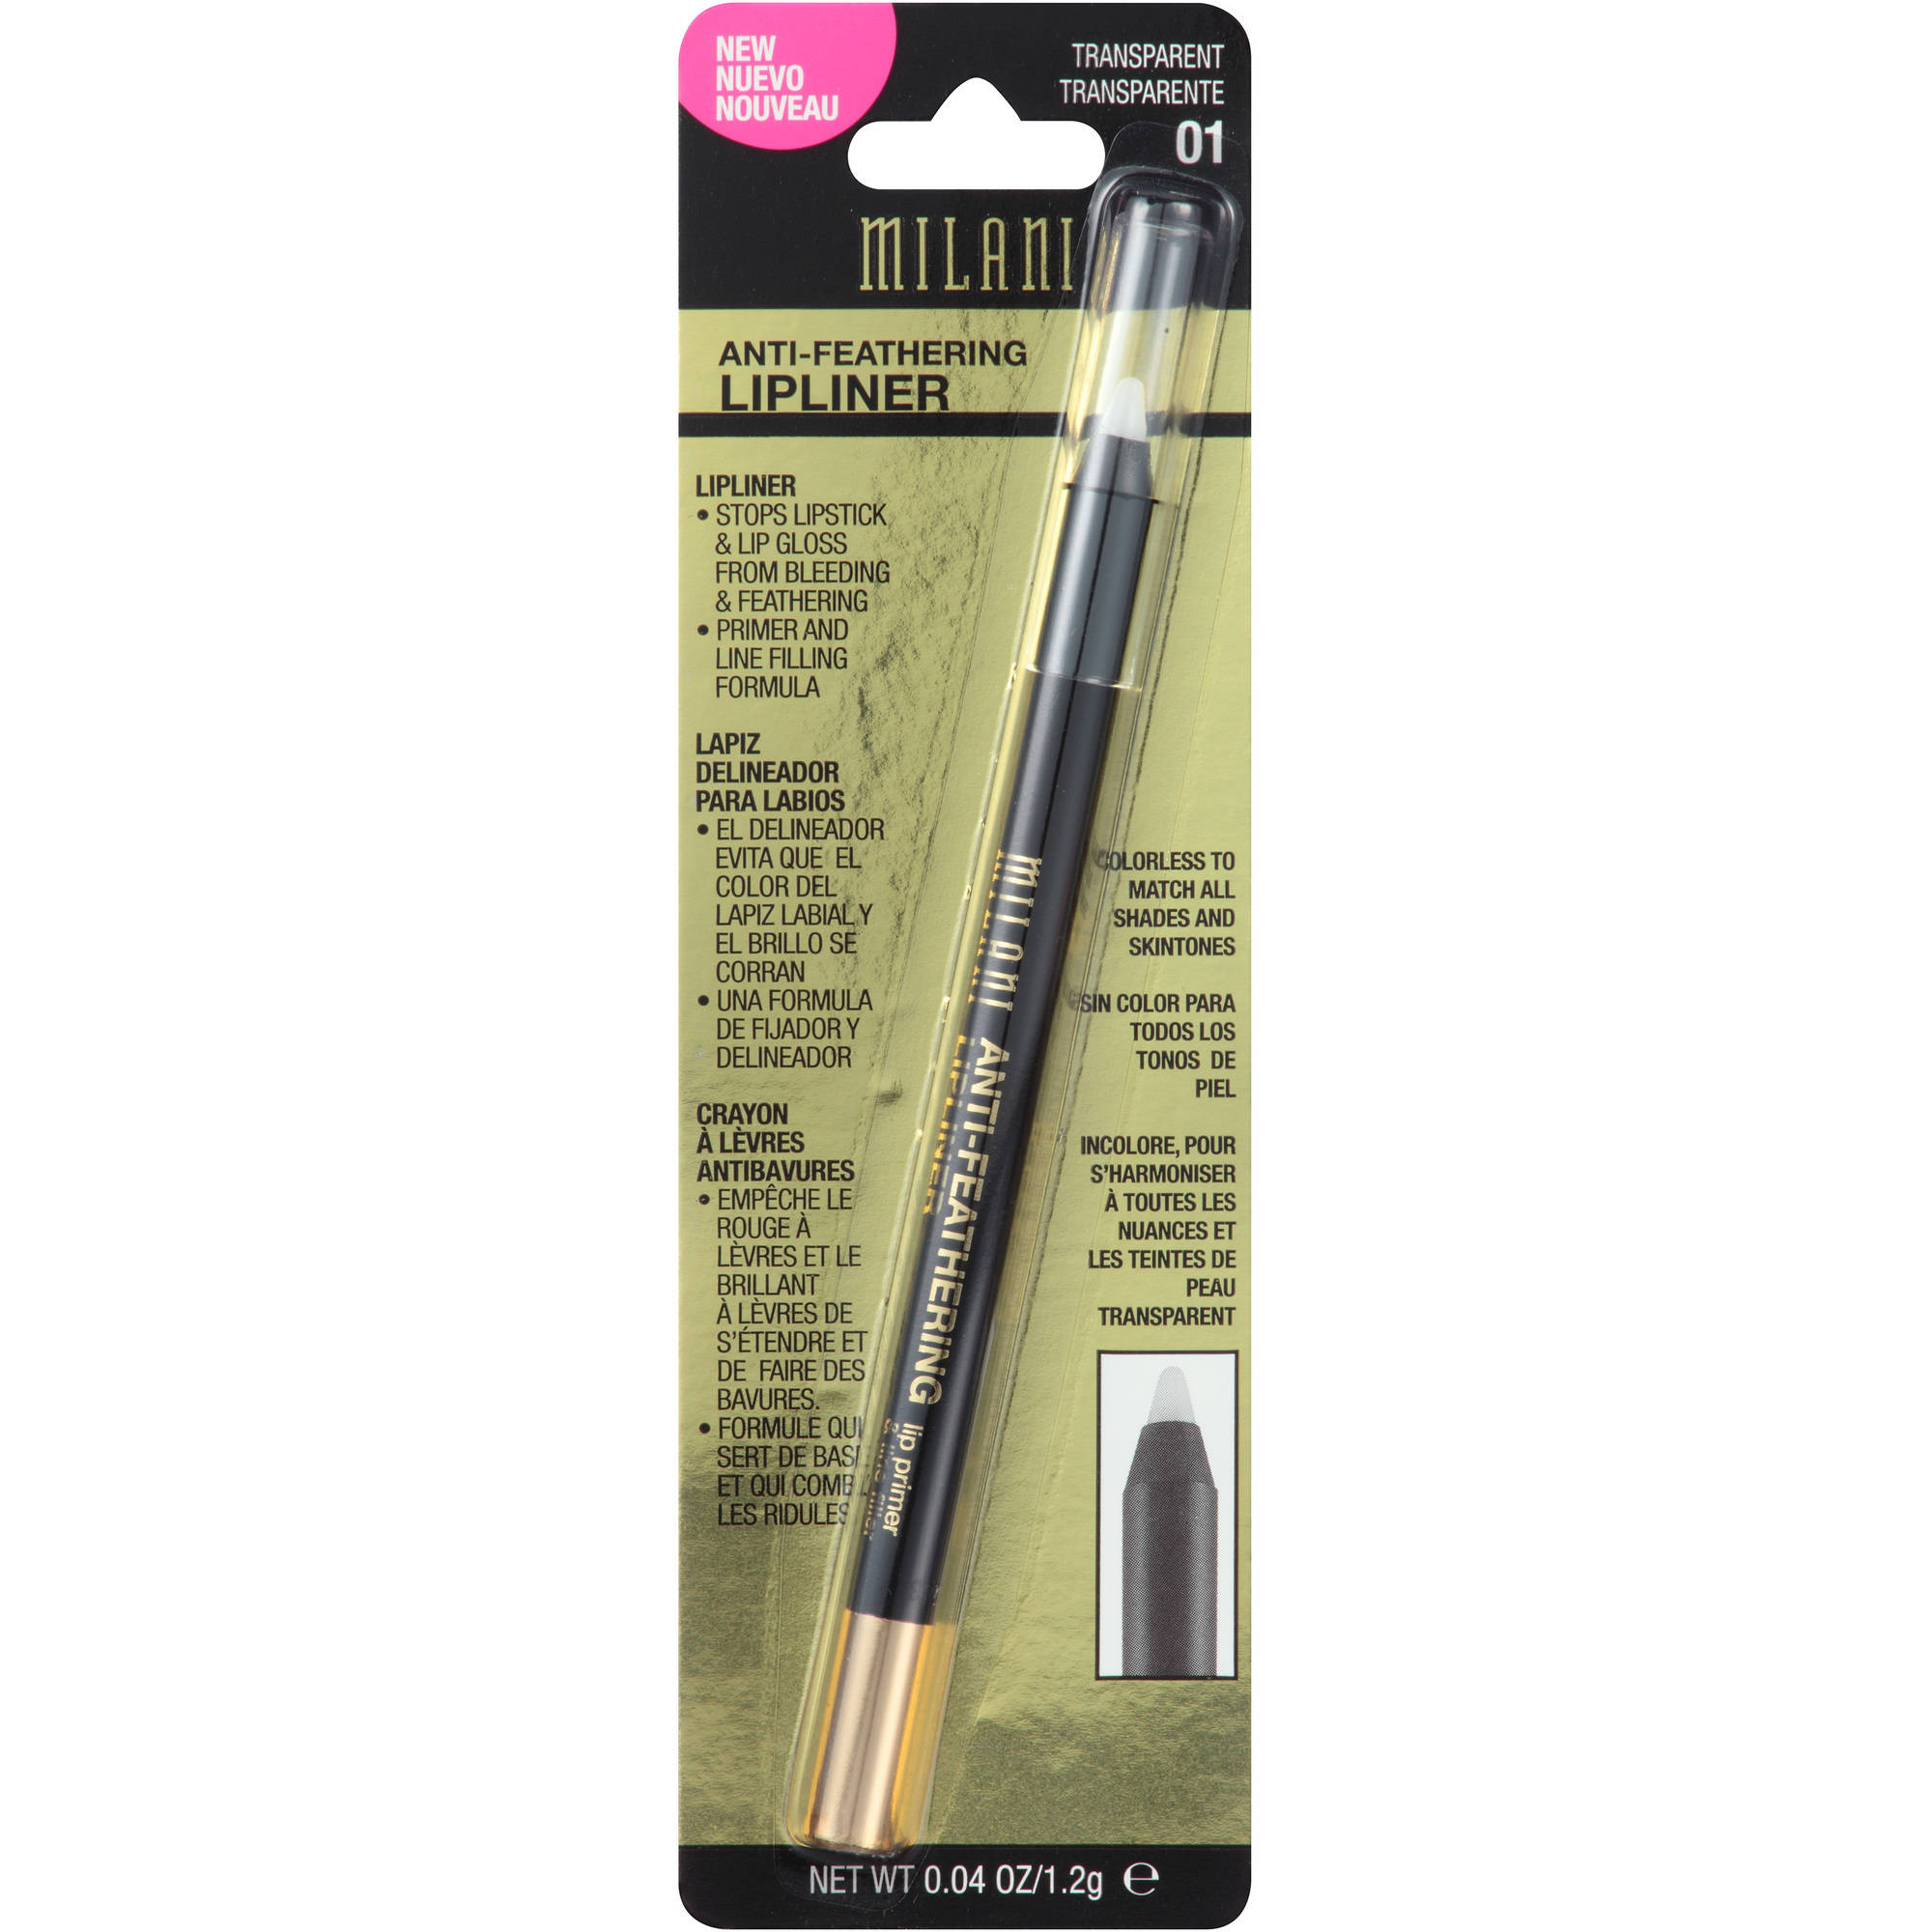 Milani Anti-Feathering Lipliner, 01 Transparent, 0.04 oz